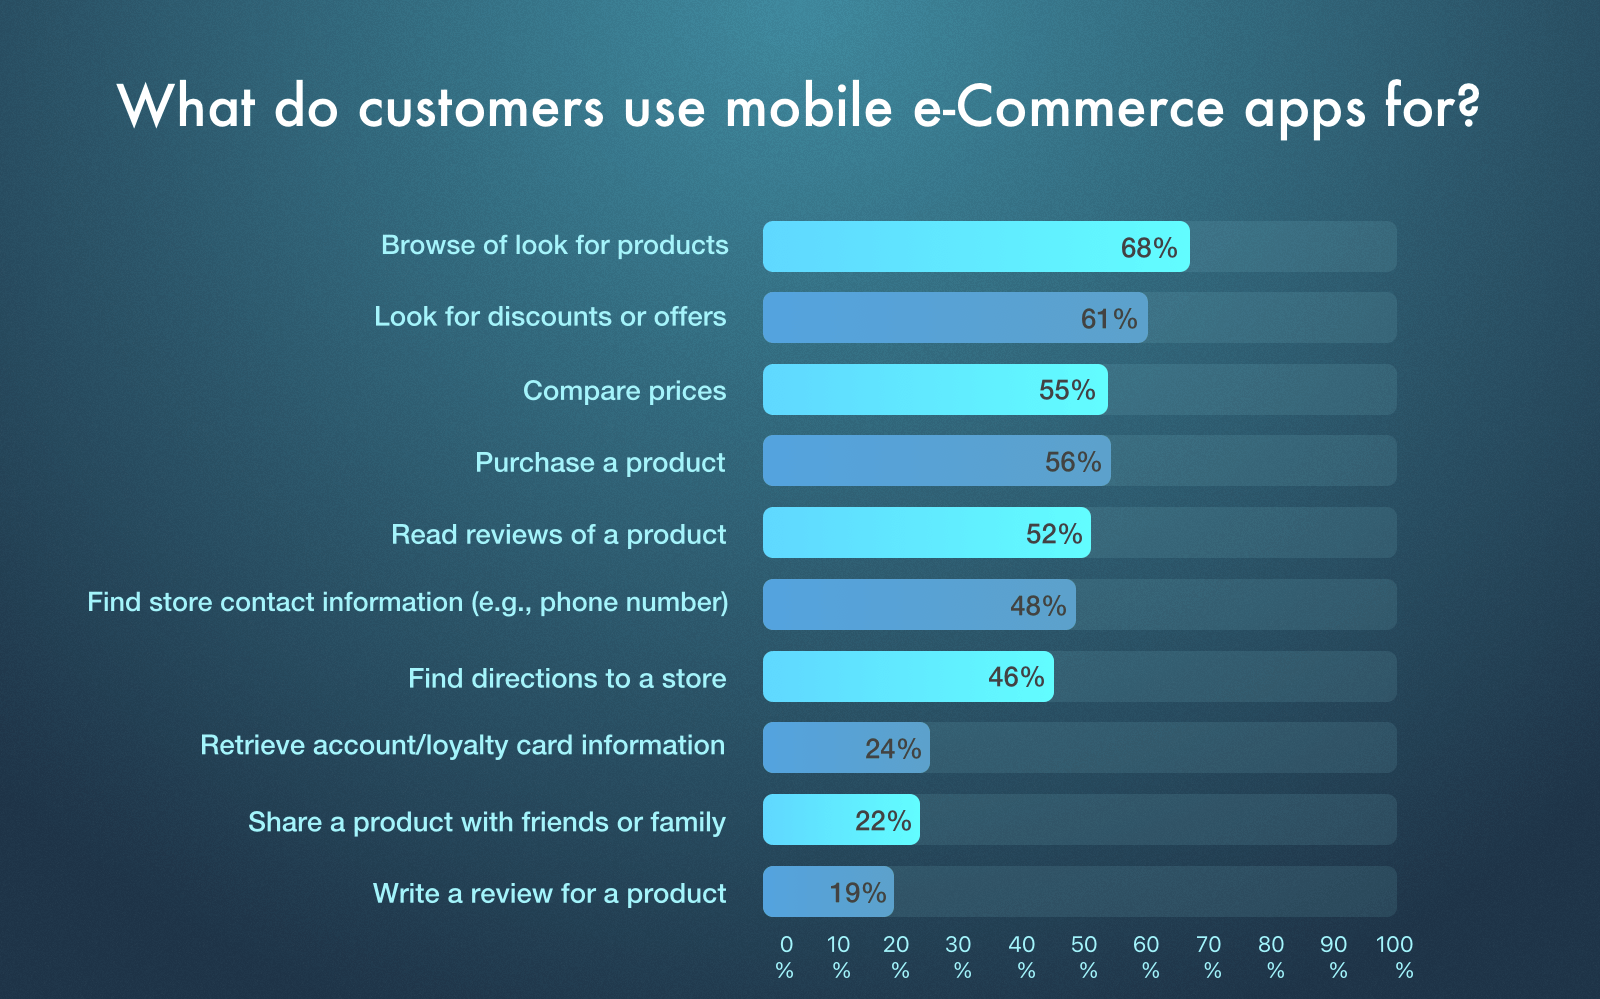 What are the benefits of M-commerce apps?